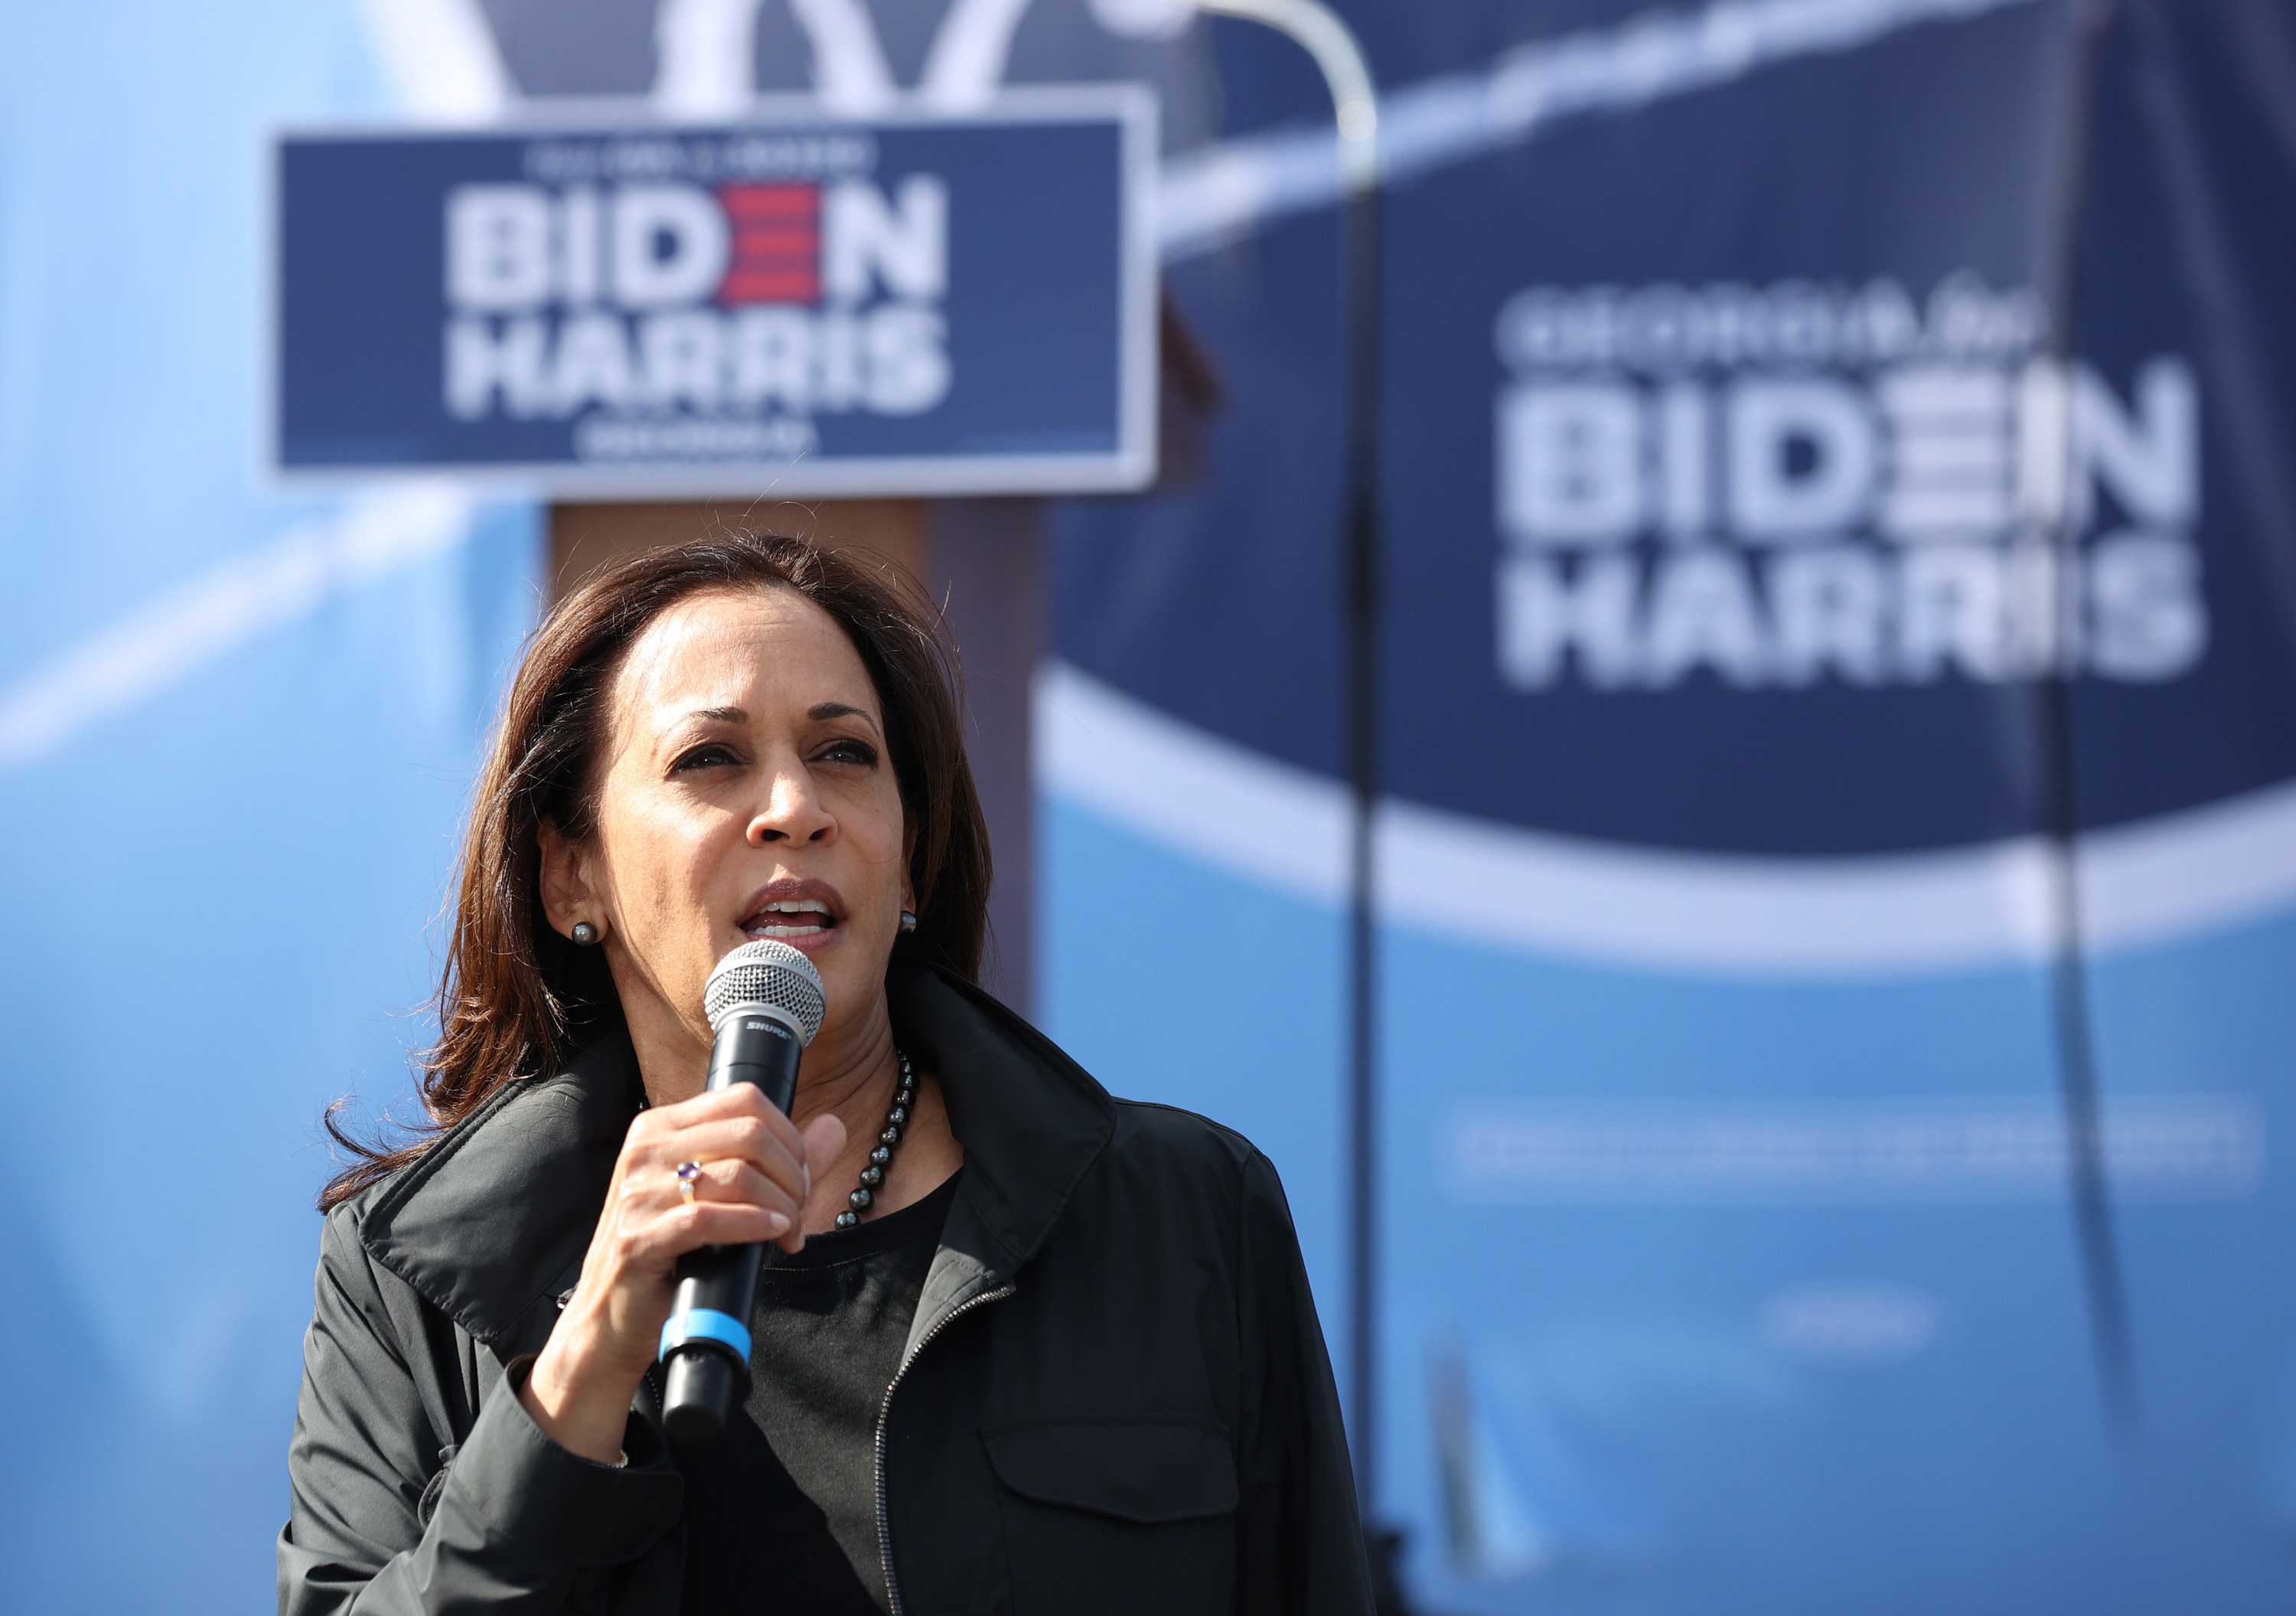 Kamala Harris speaking at a presidential campaign event